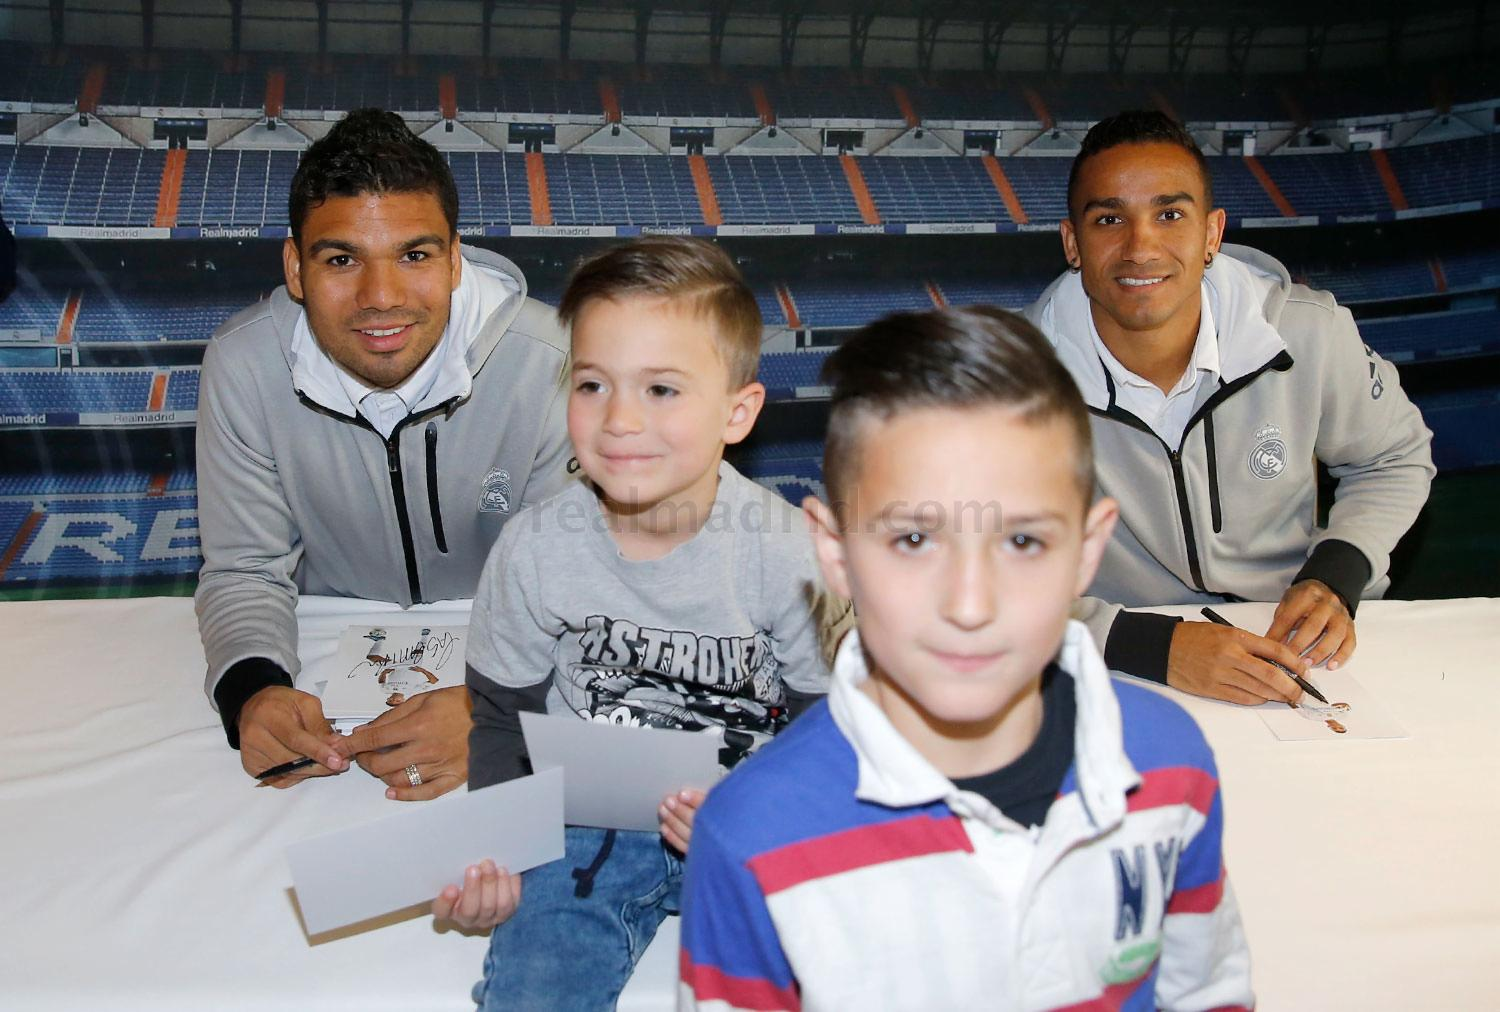 Real Madrid - Firmas en Valencia - 02-03-2016